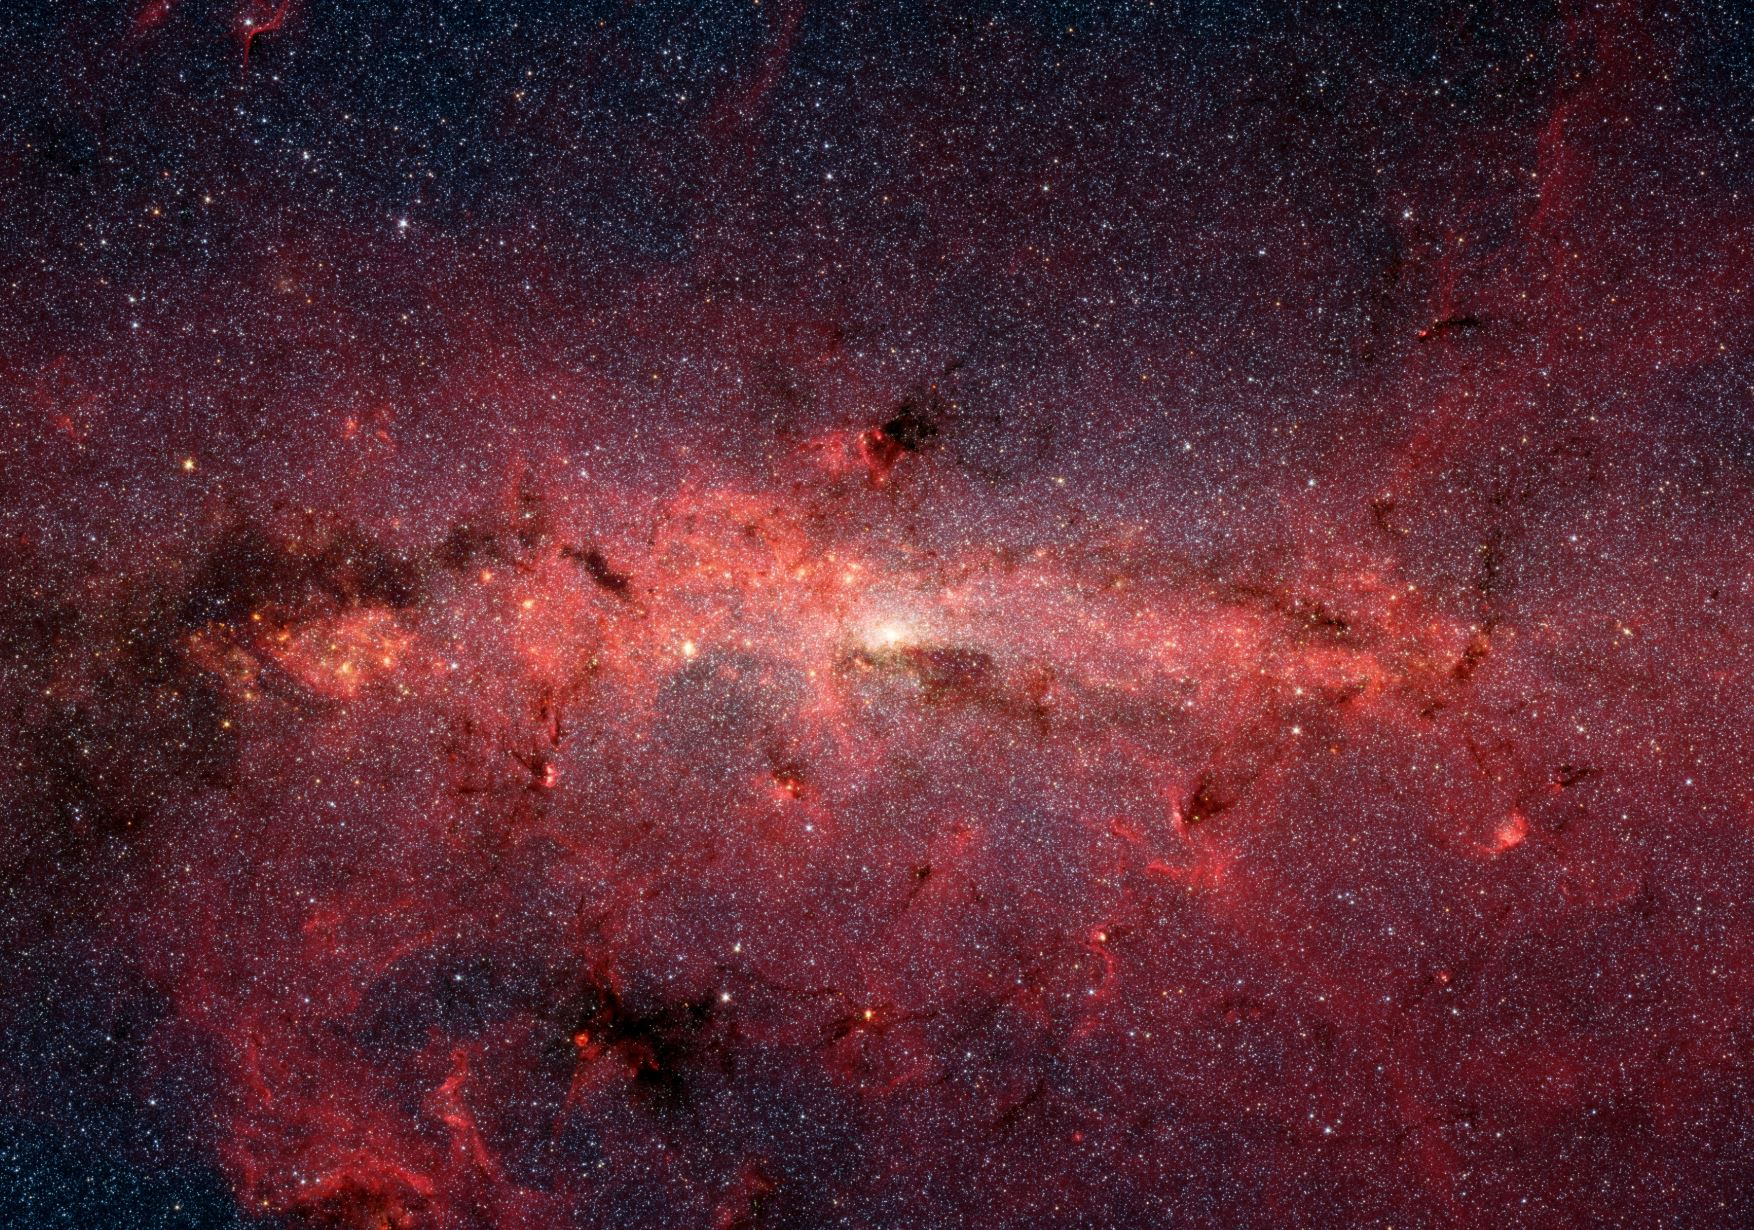 Our galactic core - Image Credit:  NASA/JPL-Caltech/S. Stolvy (SSC/Caltech) via Wikimedia Commons